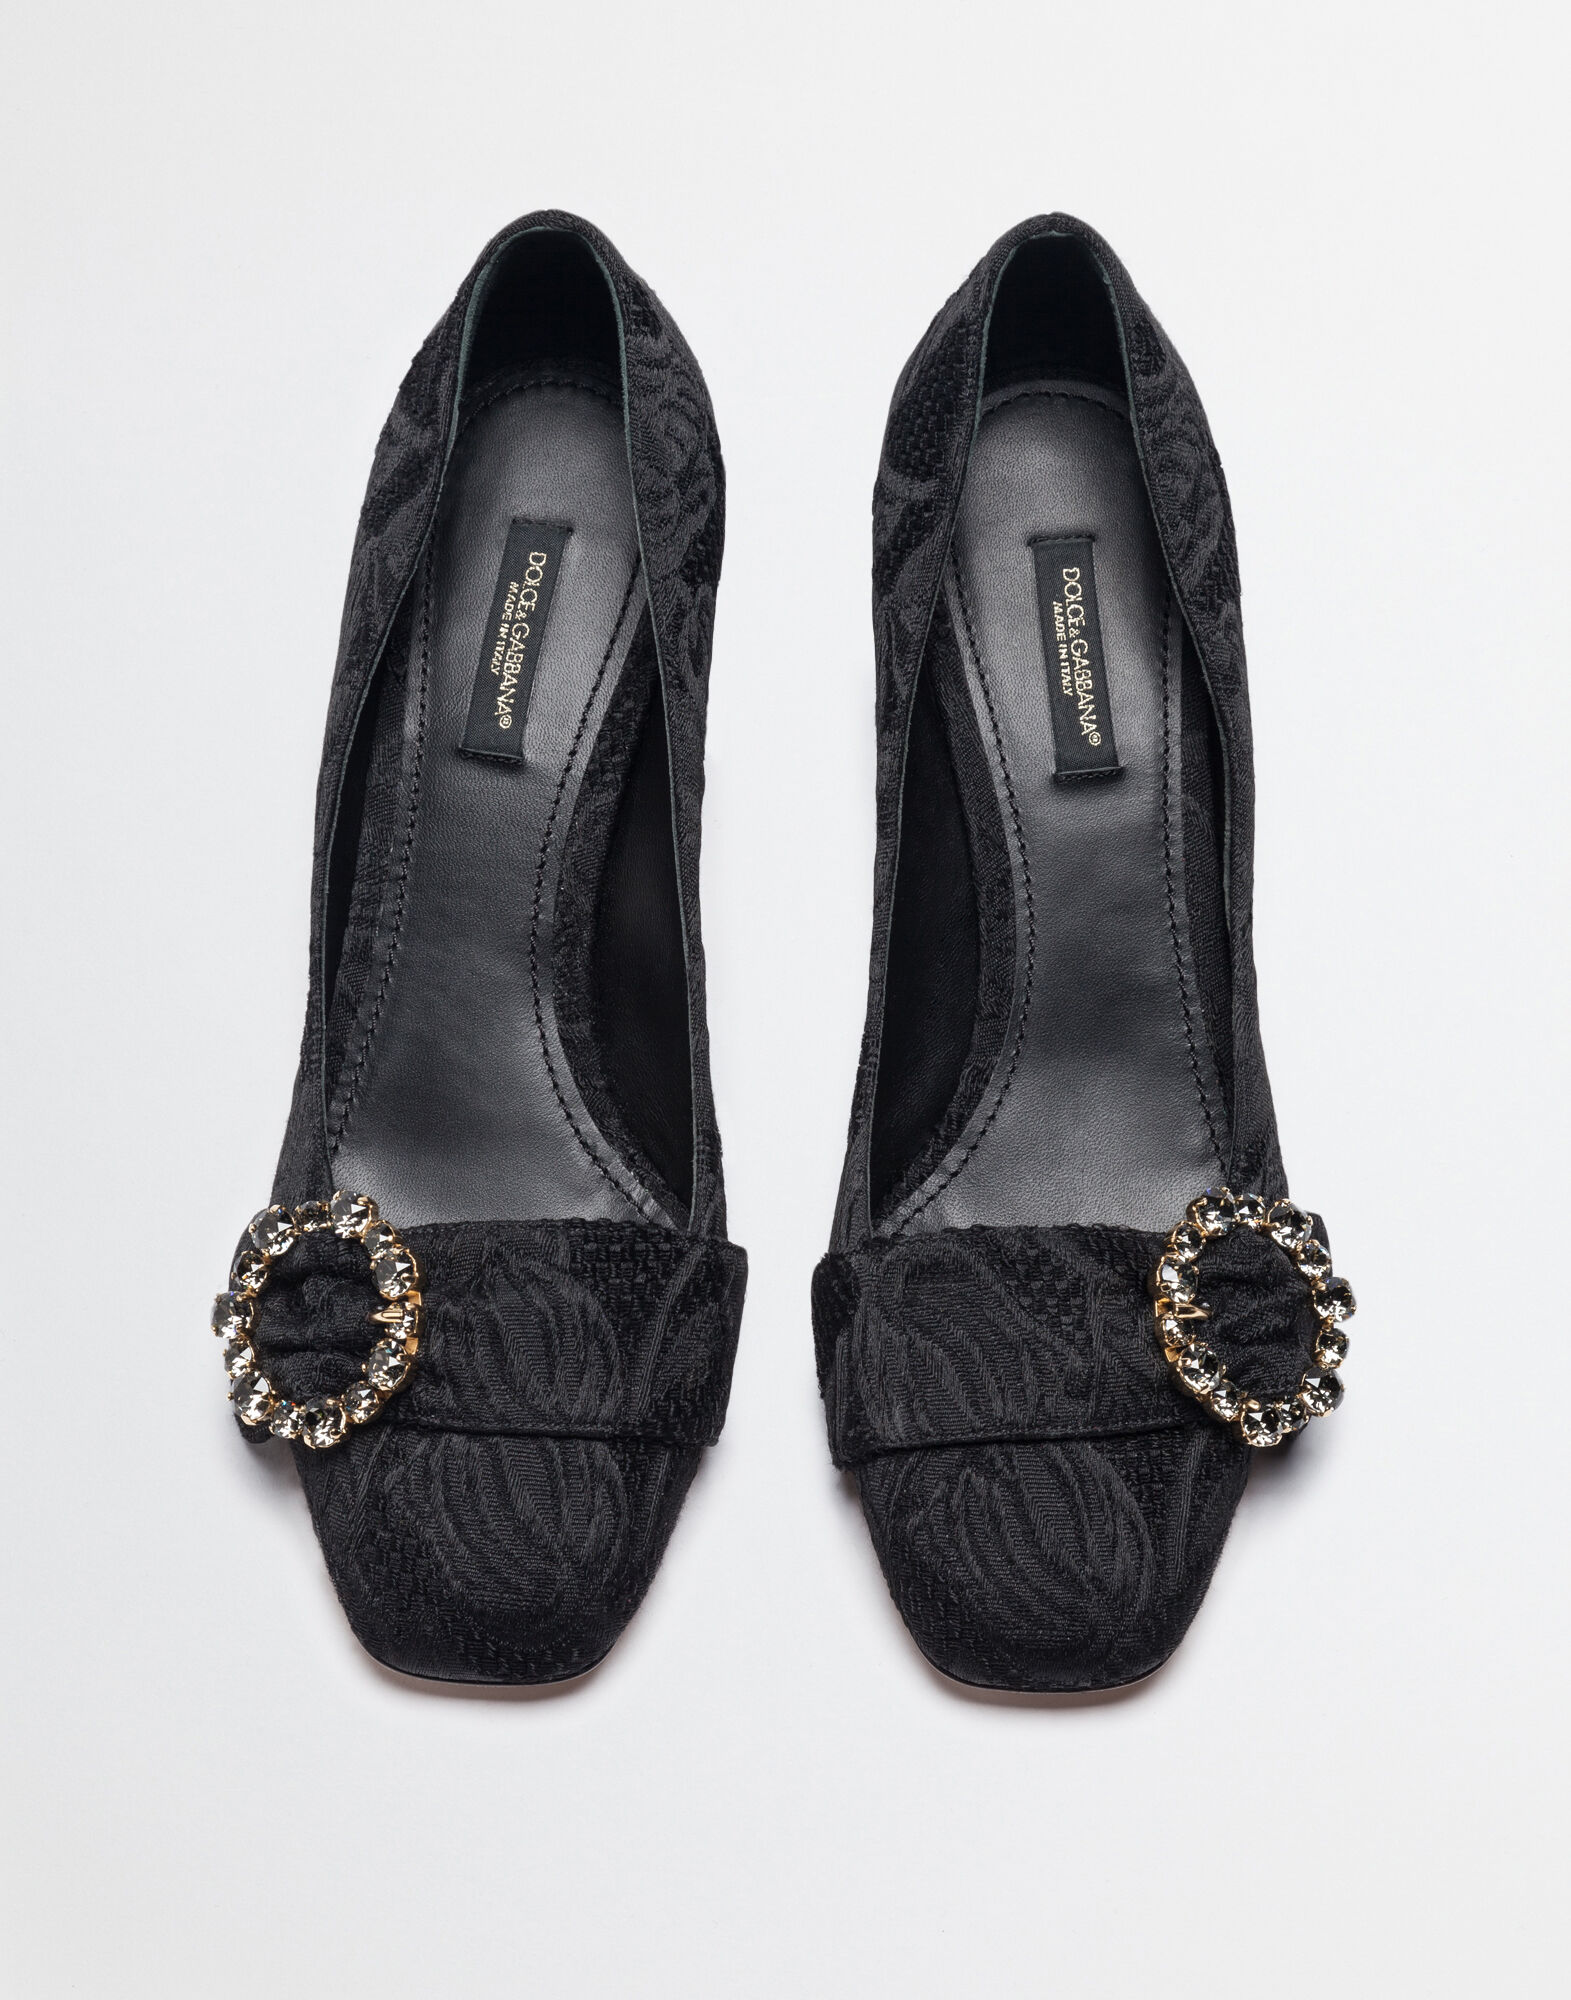 JACQUARD PUMPS WITH BEJEWELLED BUCKLE